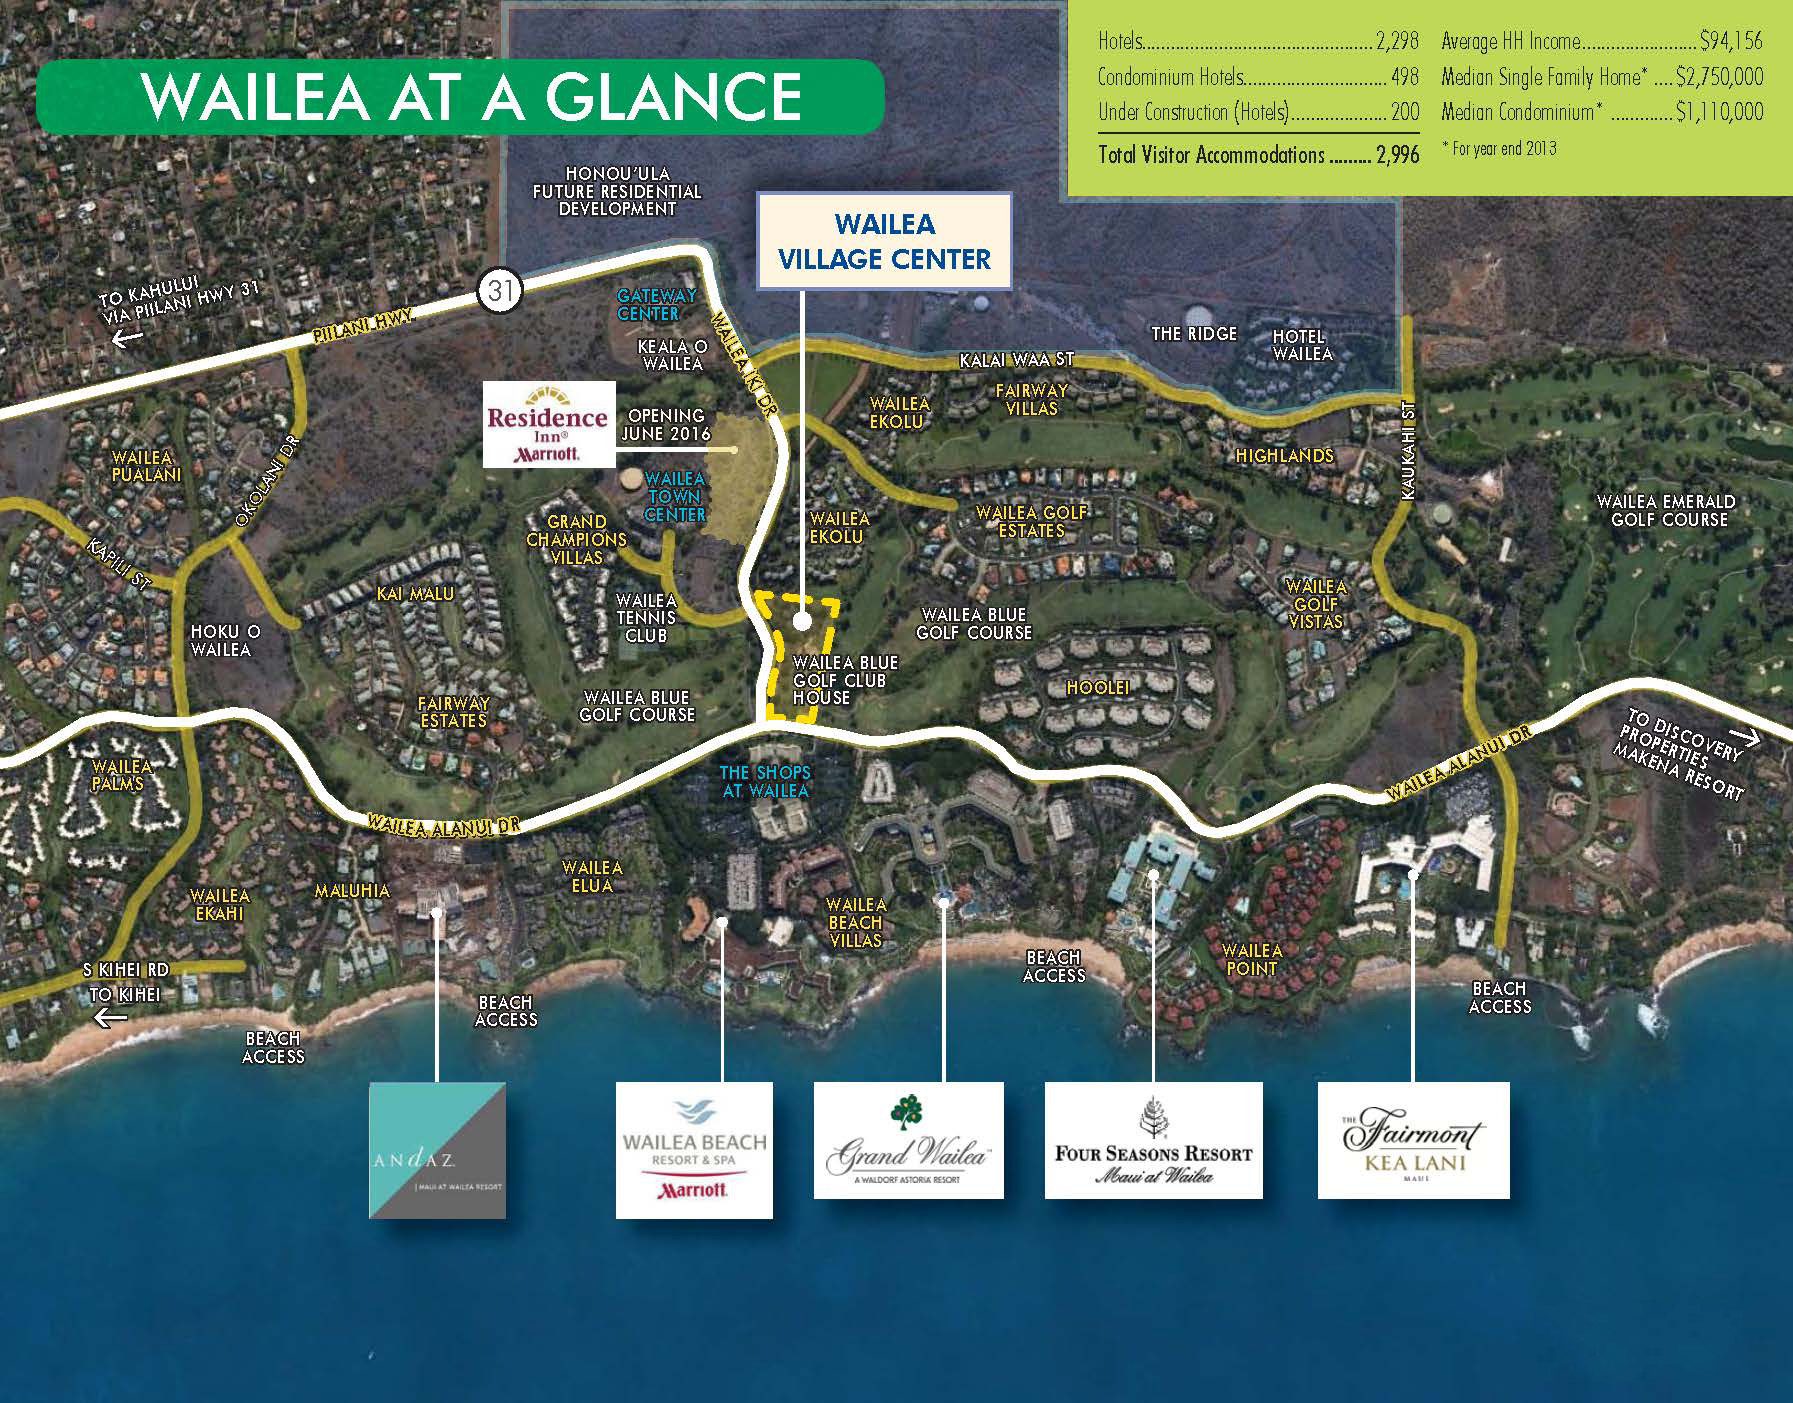 WAILEA VILLAGE CENTER